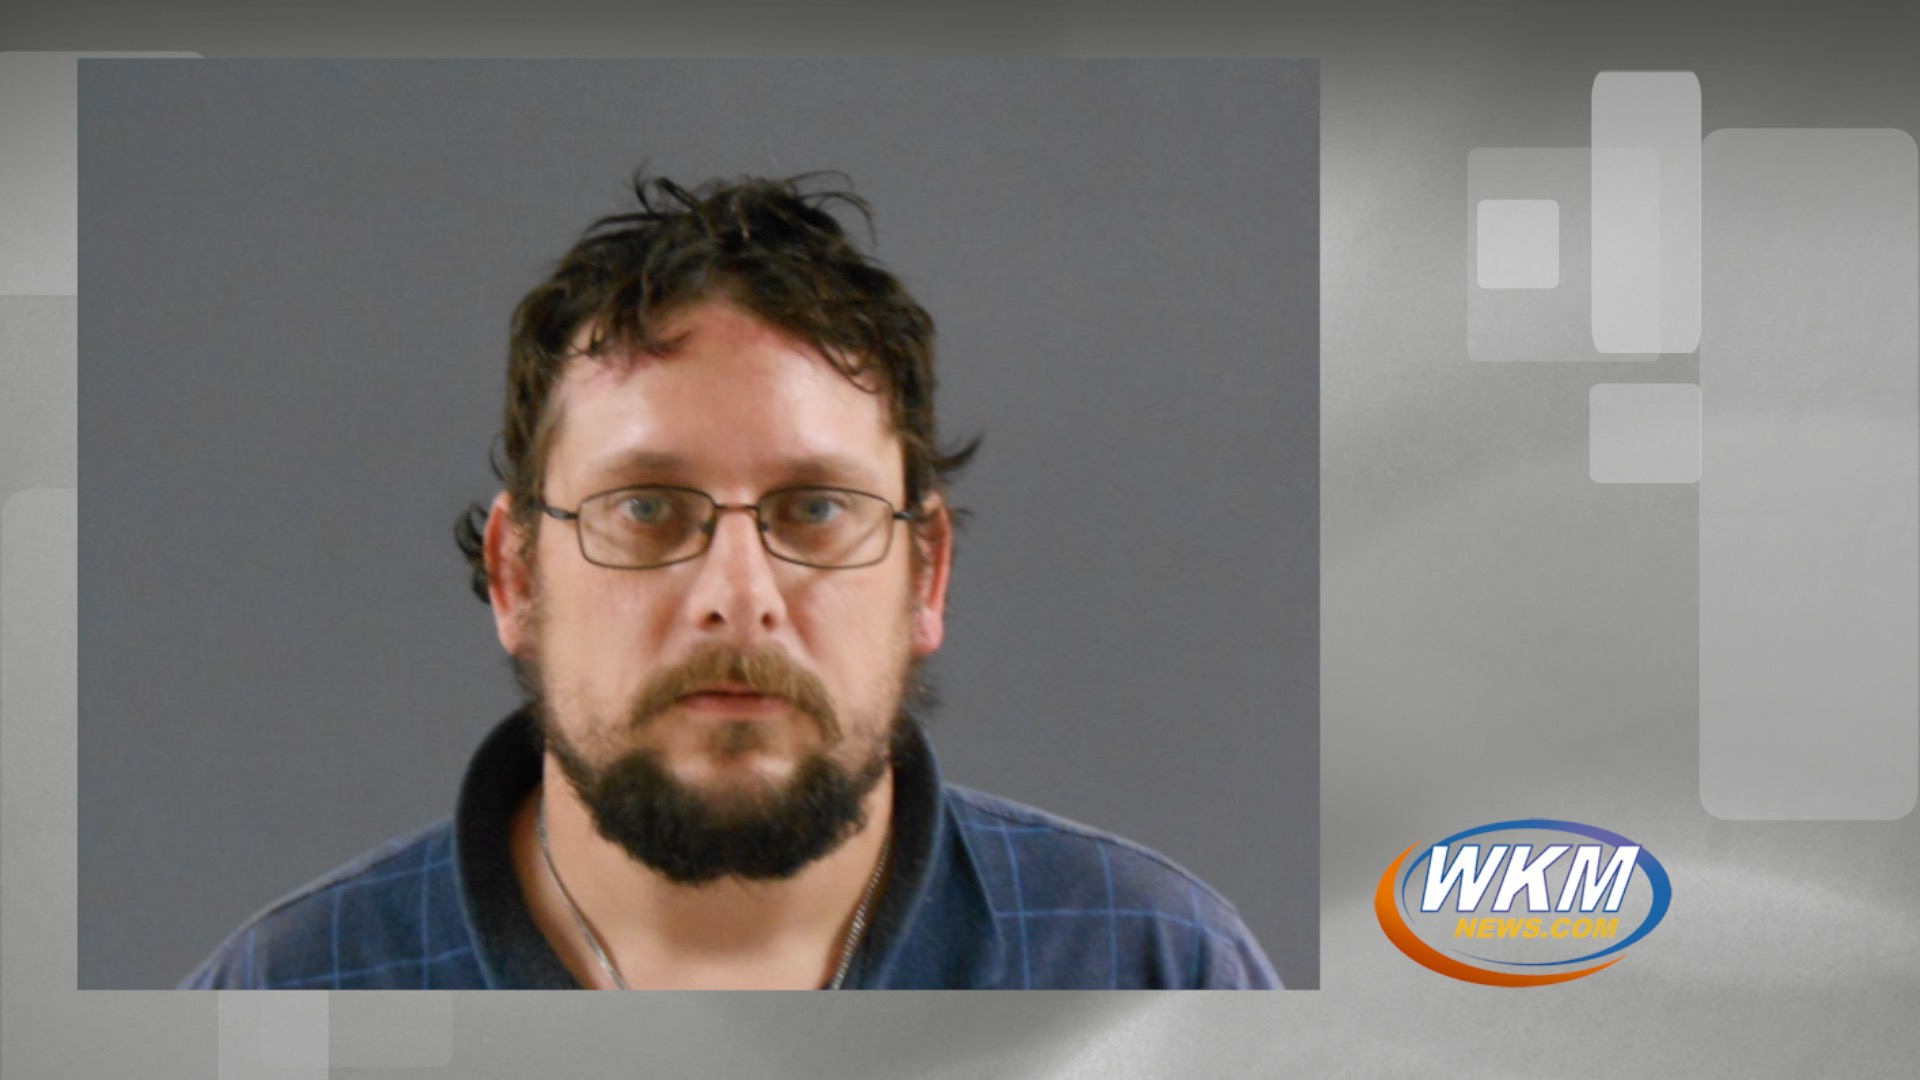 Switzerland County Man Arrested on Child Solicitation Charges